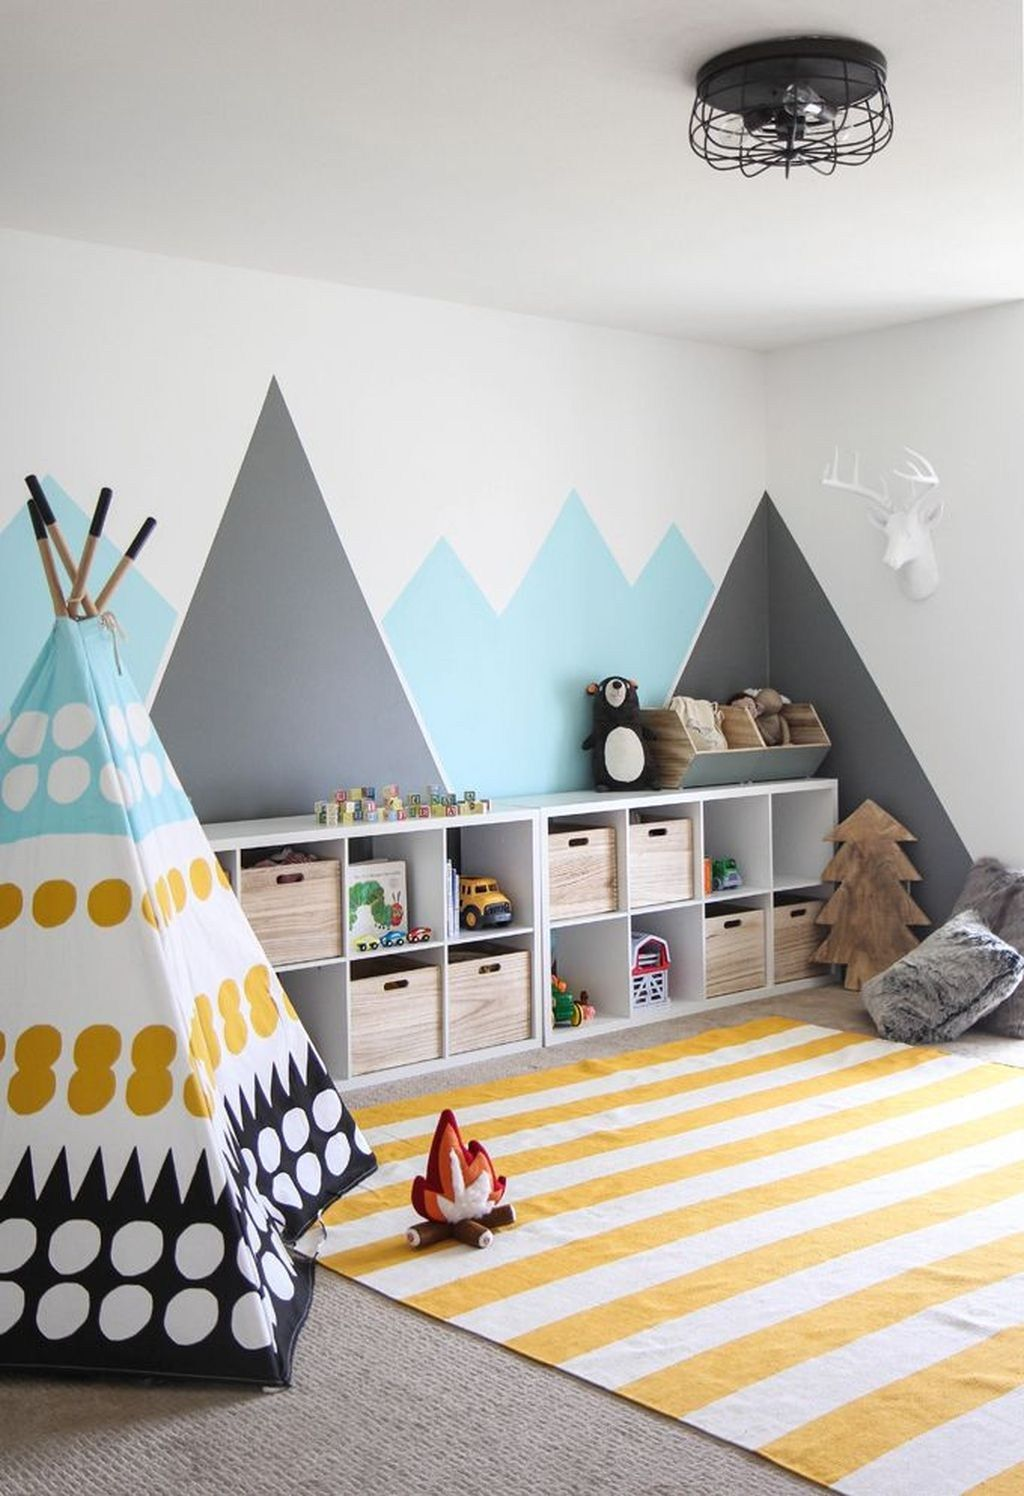 48 Awesome Playroom Design Ideas For Kids | New House Ideas | Kids